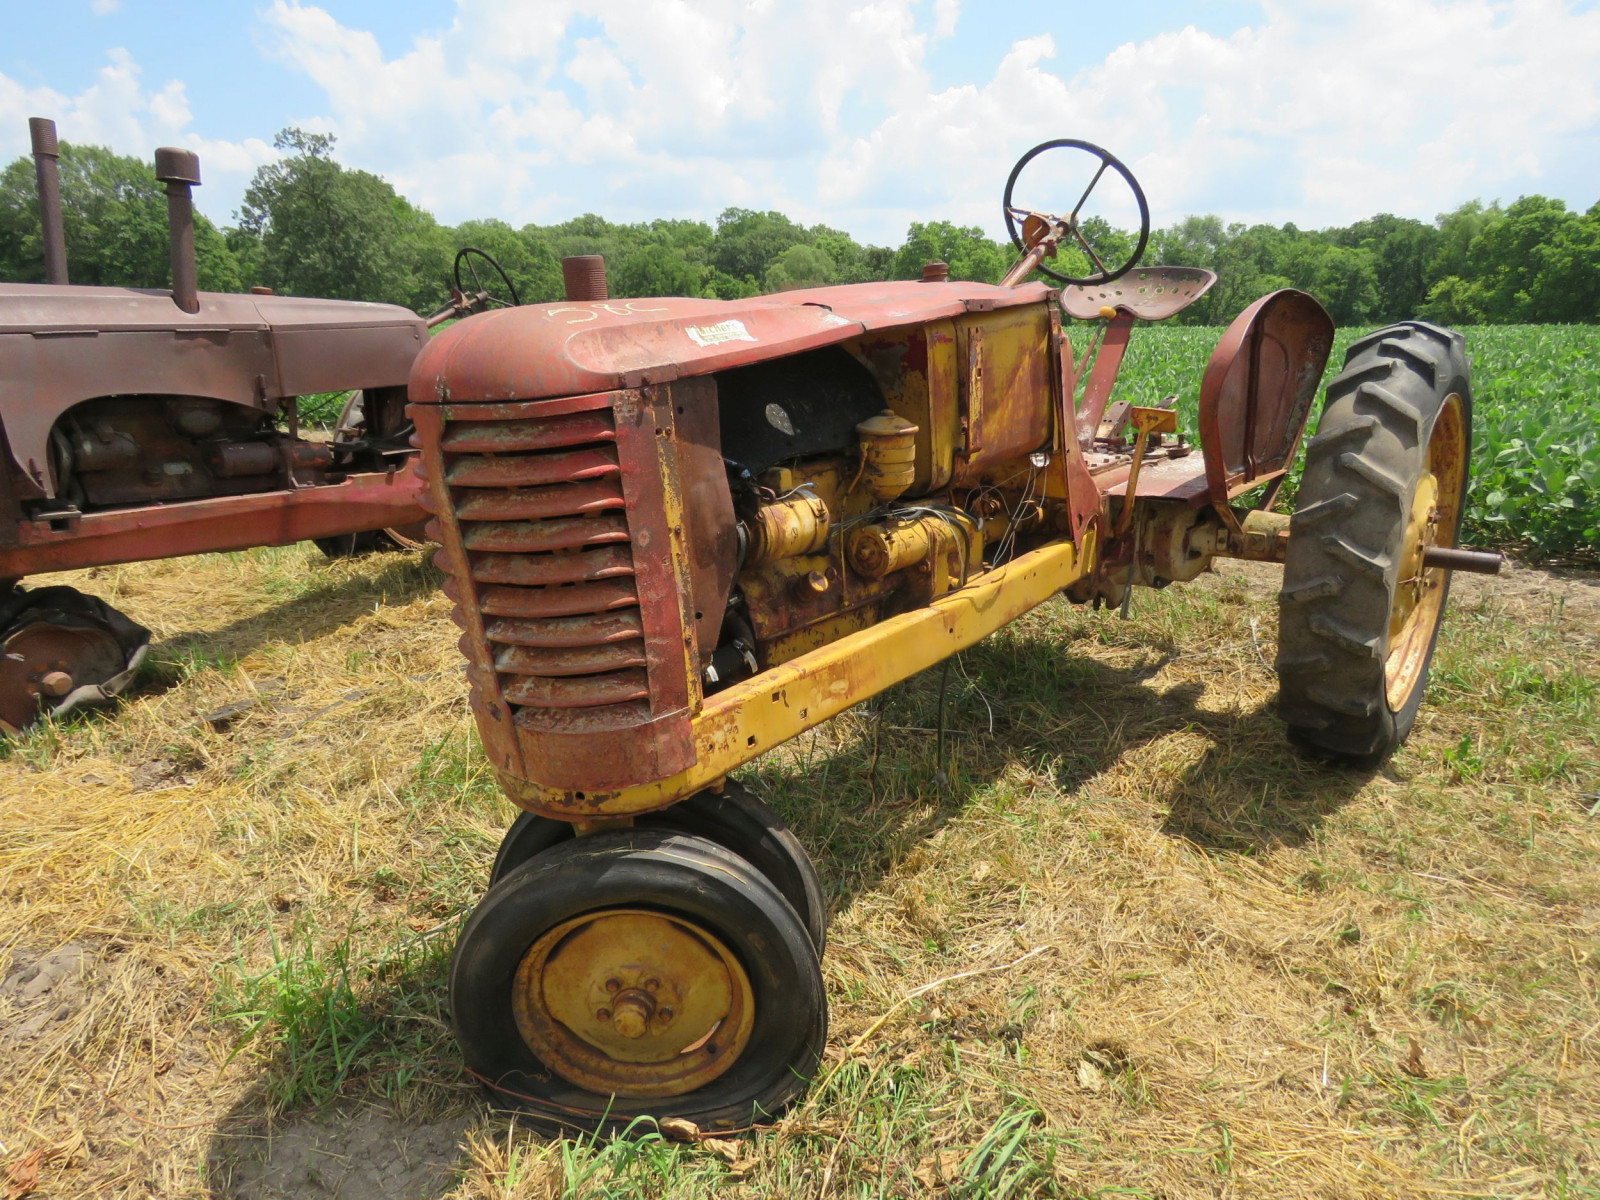 Massey Harris Tractor for Project or Parts - Image 7